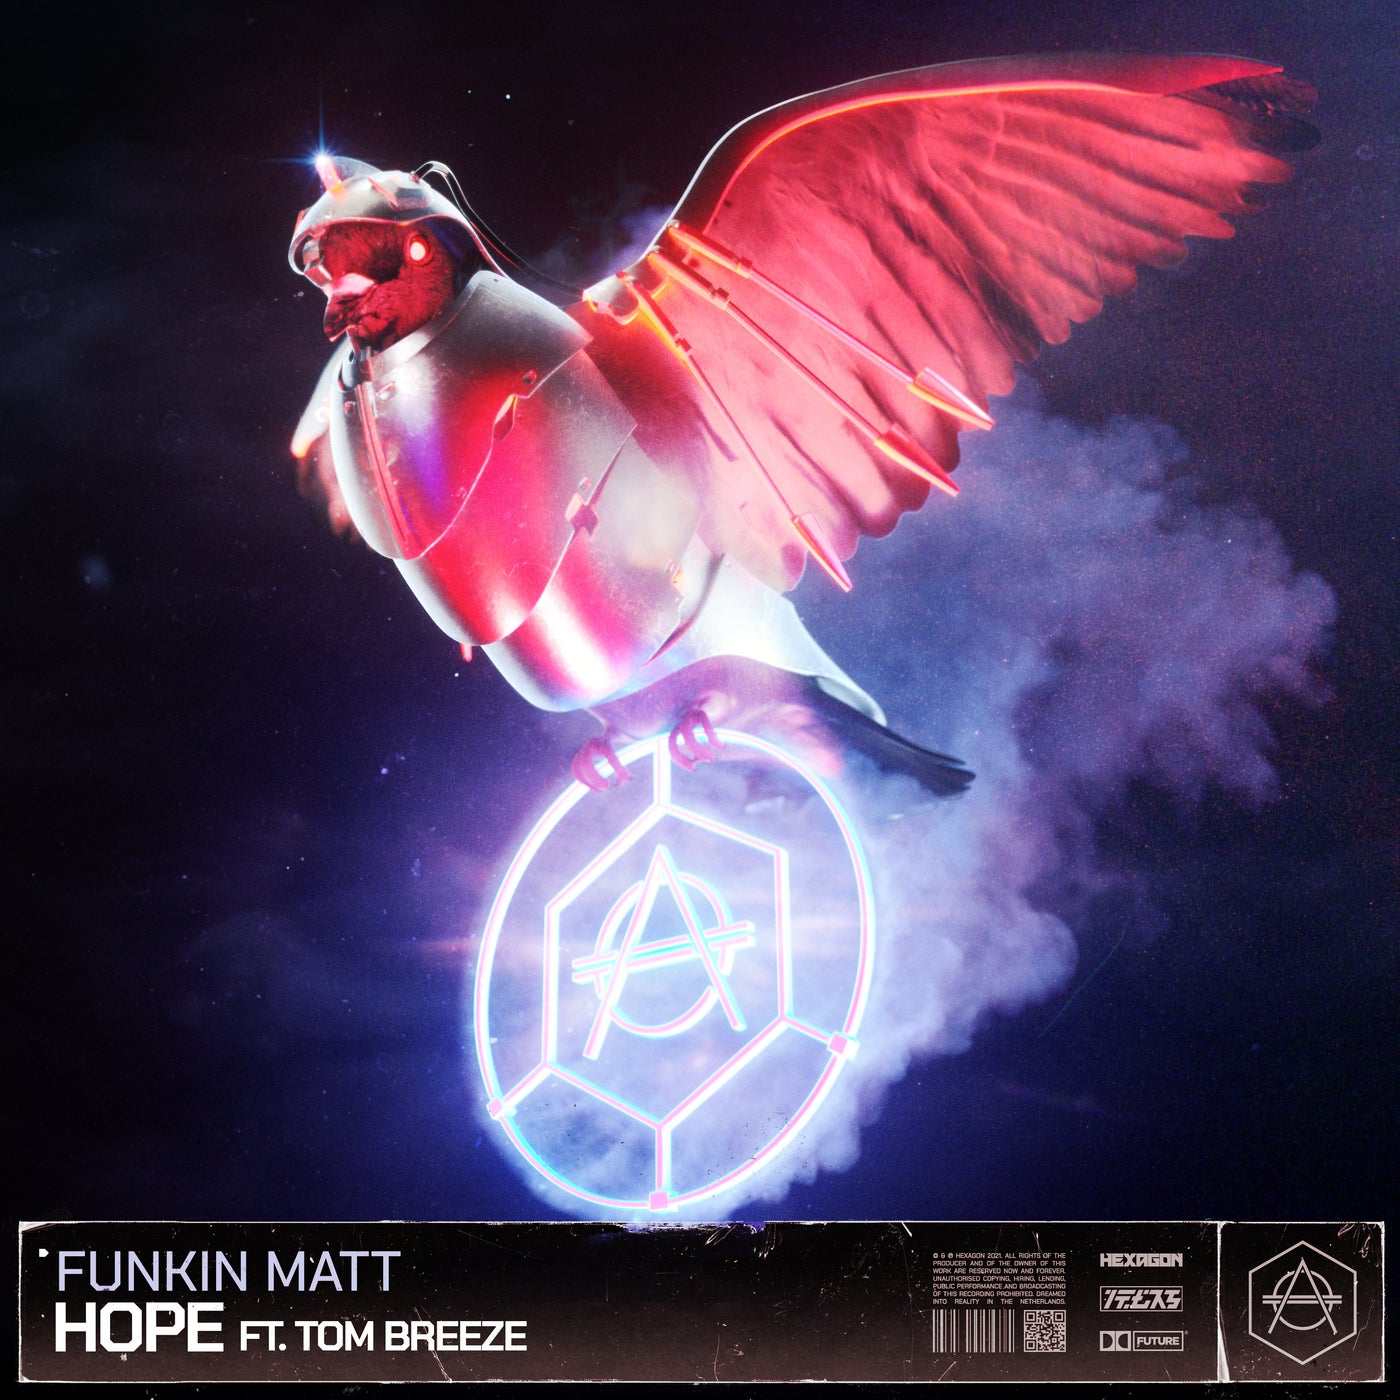 Hope feat. Tom Breeze (Extended Mix)